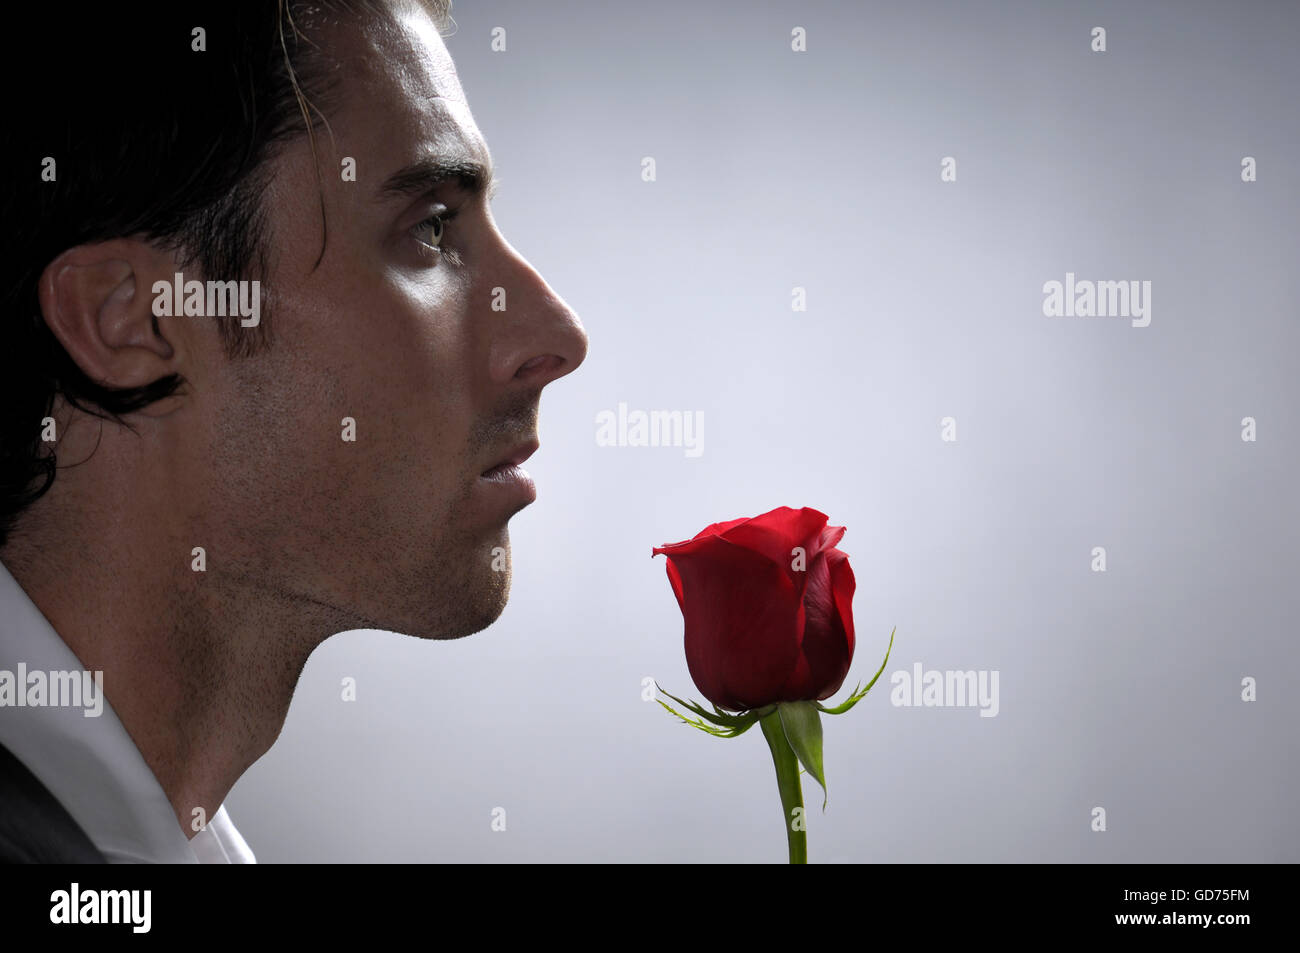 Portrait of a young man with a red rose - Stock Image